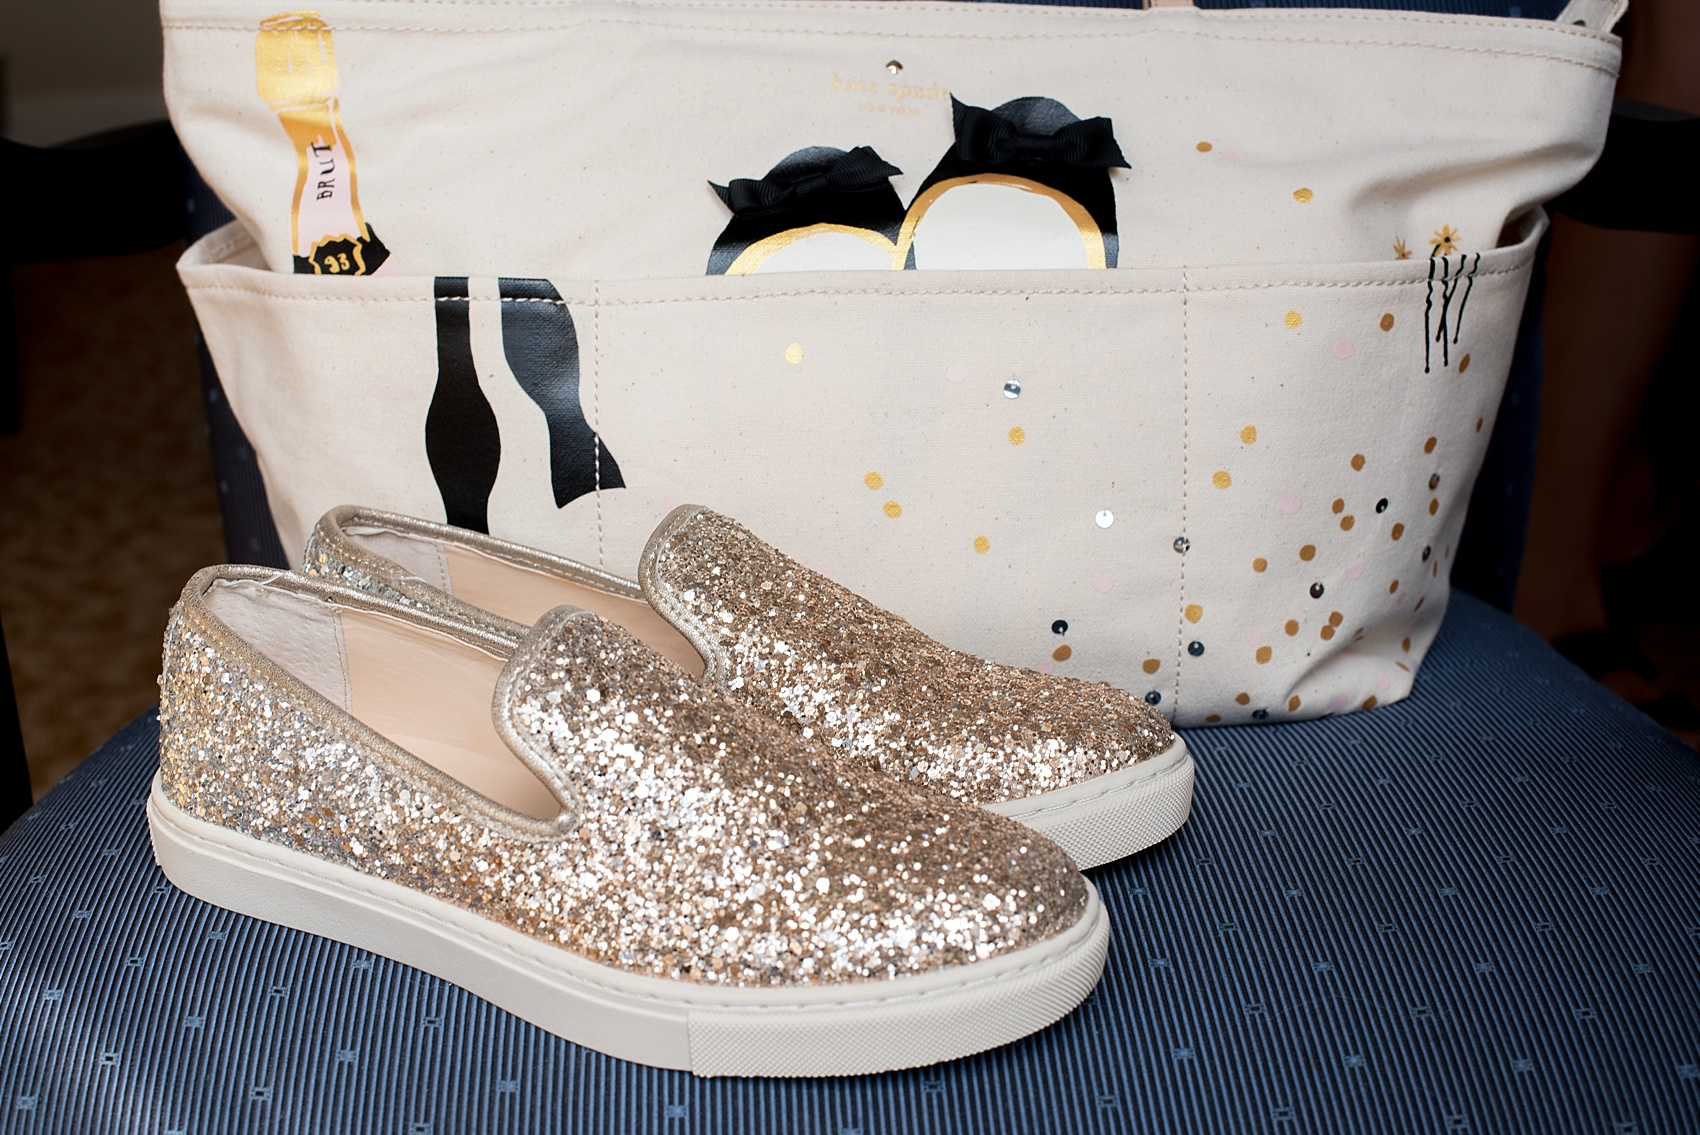 501 Union lesbian wedding reception gold glitter shoes. Photos by Mikkel Paige Photography, in Brooklyn, NYC. Planning by Ashley M Chamblin Events.